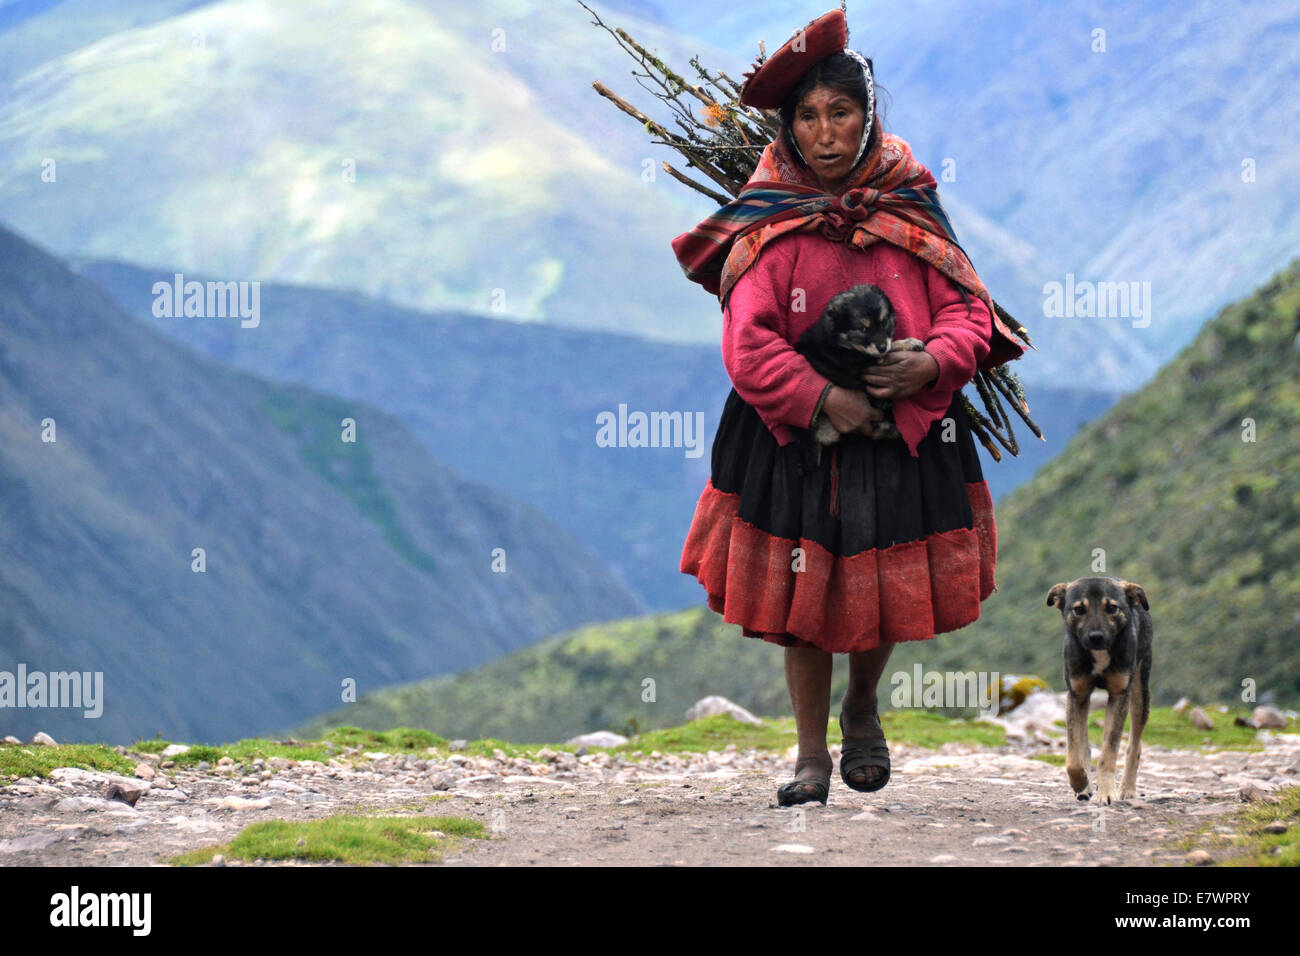 Elderly woman wearing traditional costume while gather wood, accompanied by a young dog, Andes, near Cusco, Peru - Stock Image